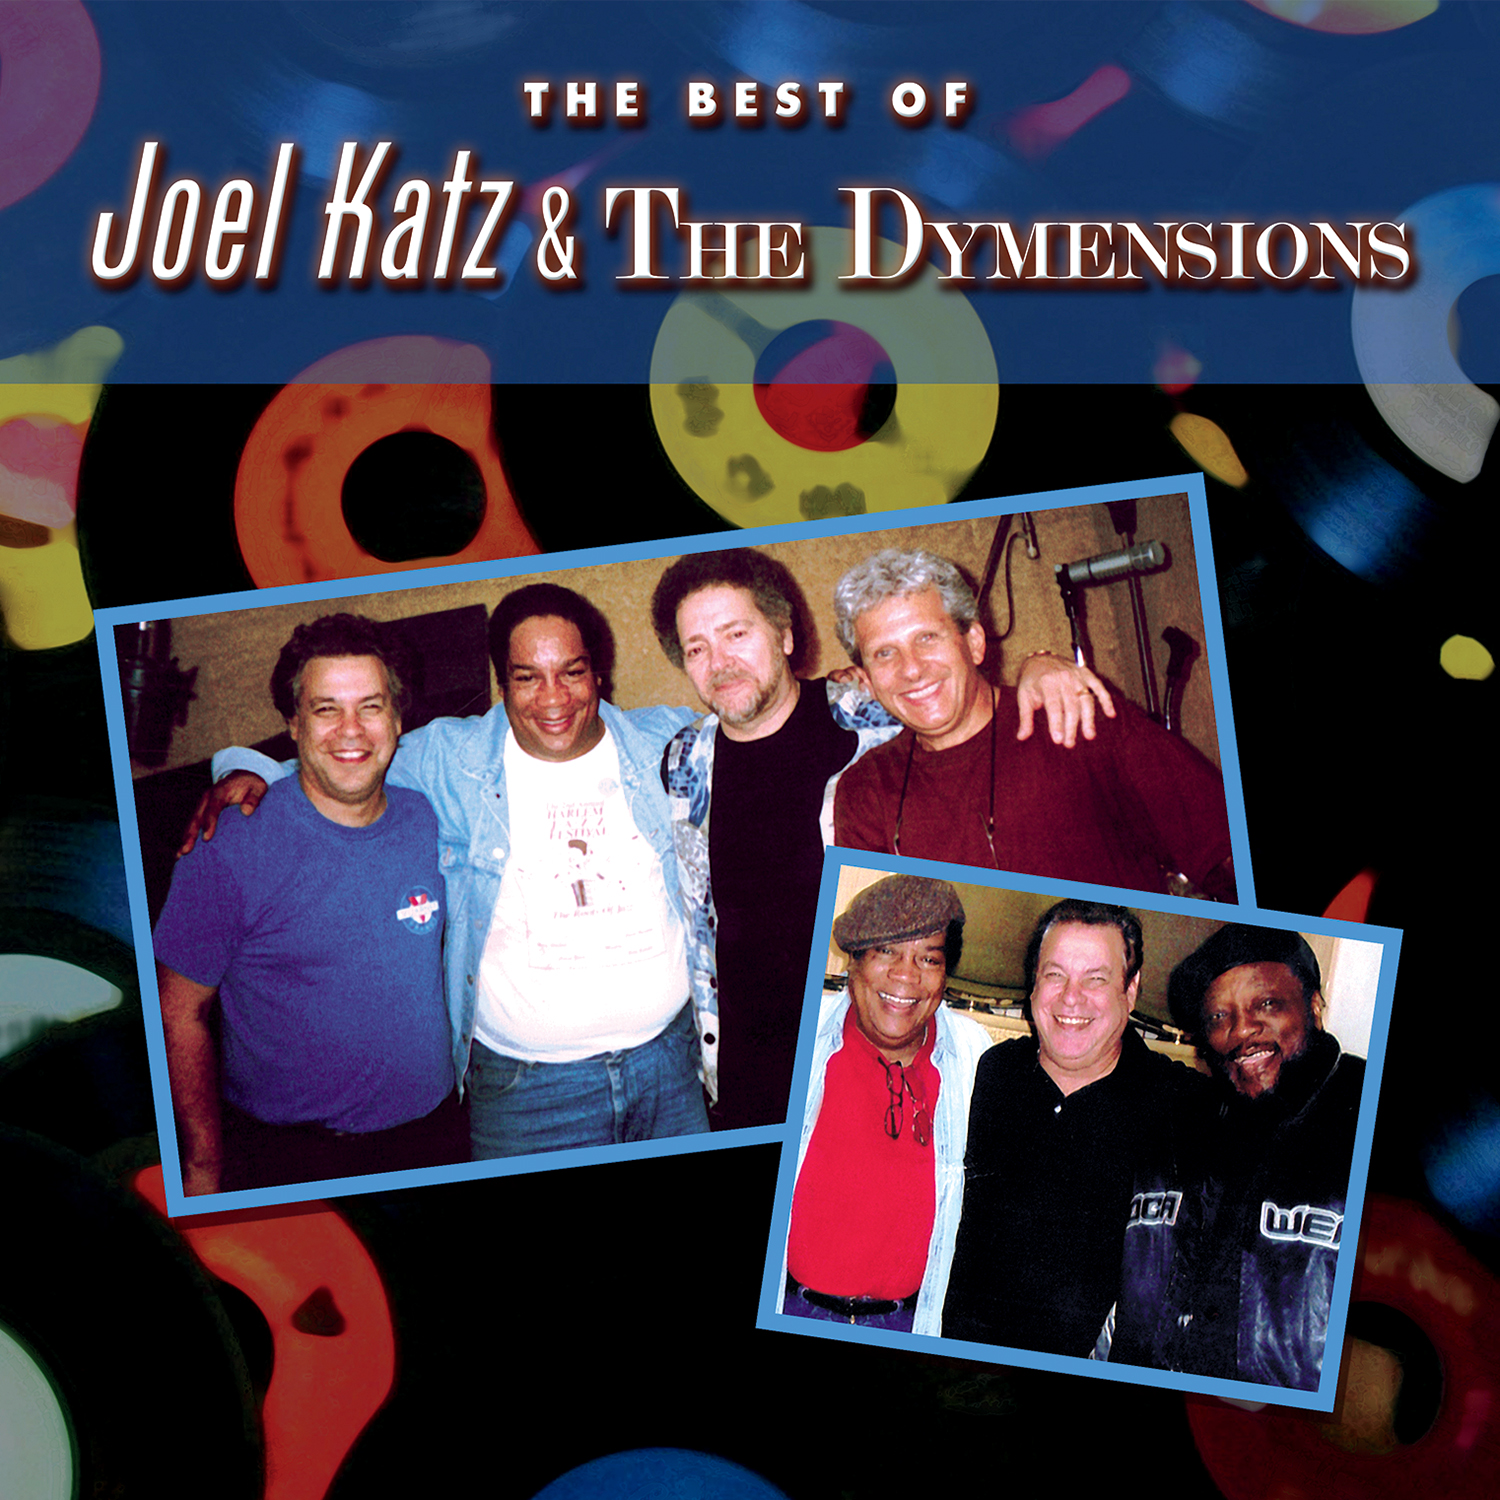 JOEL KATZ - The Best of Joel Katz & The Dymensions CD